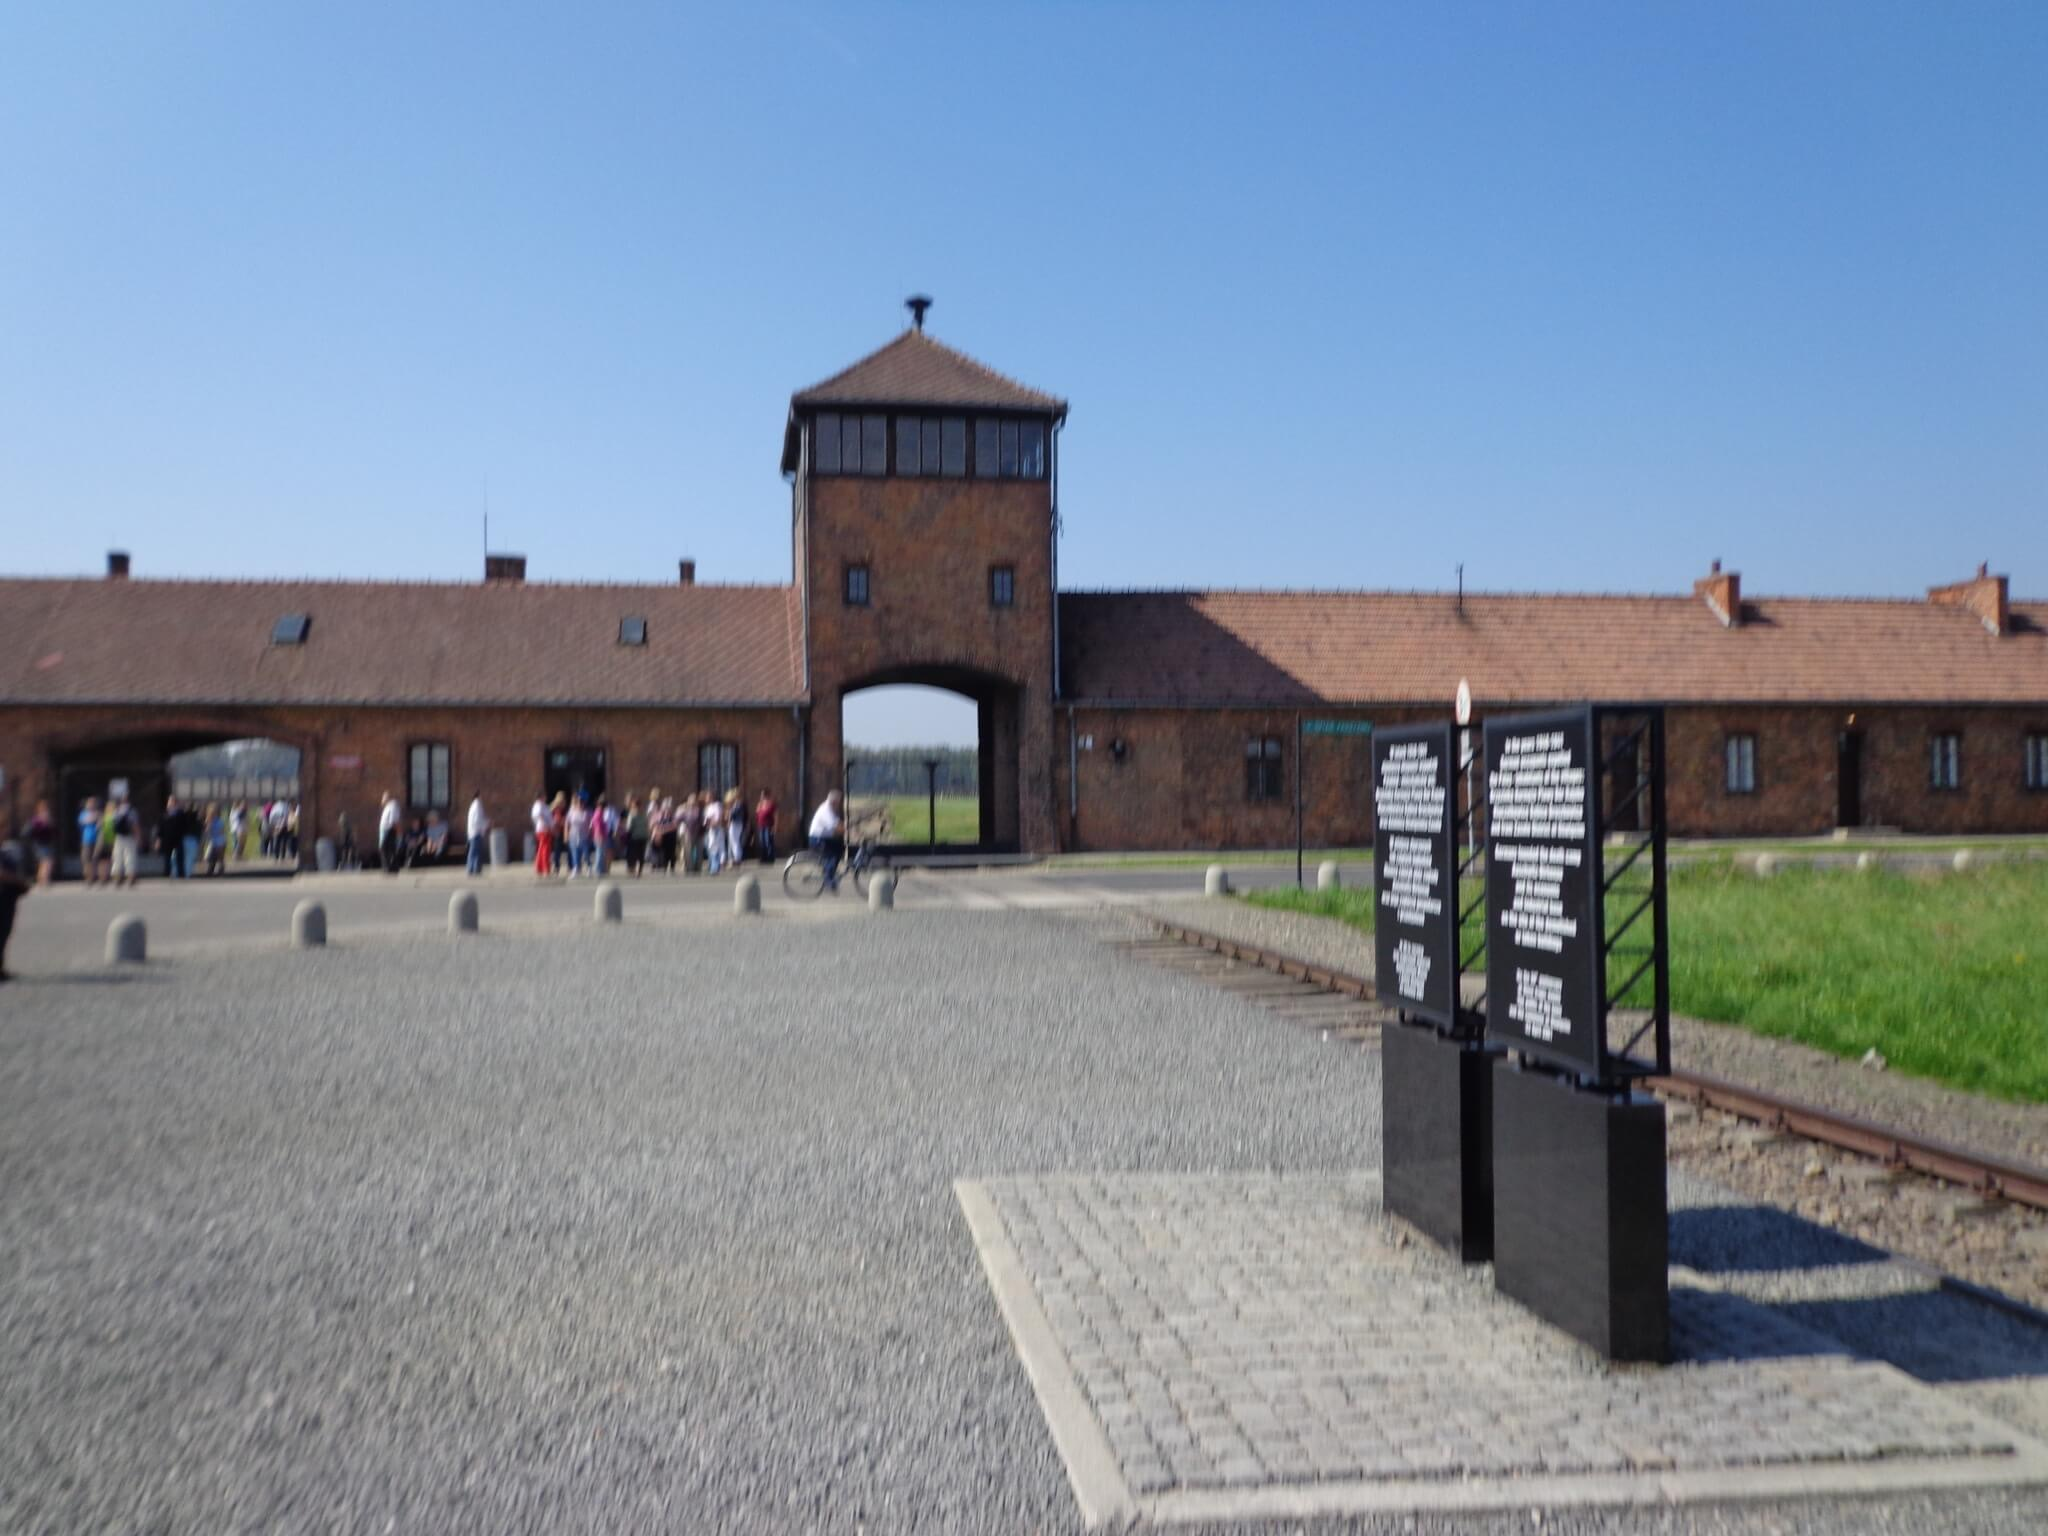 Birkenau, the iconic main building, photo by Scott Roth